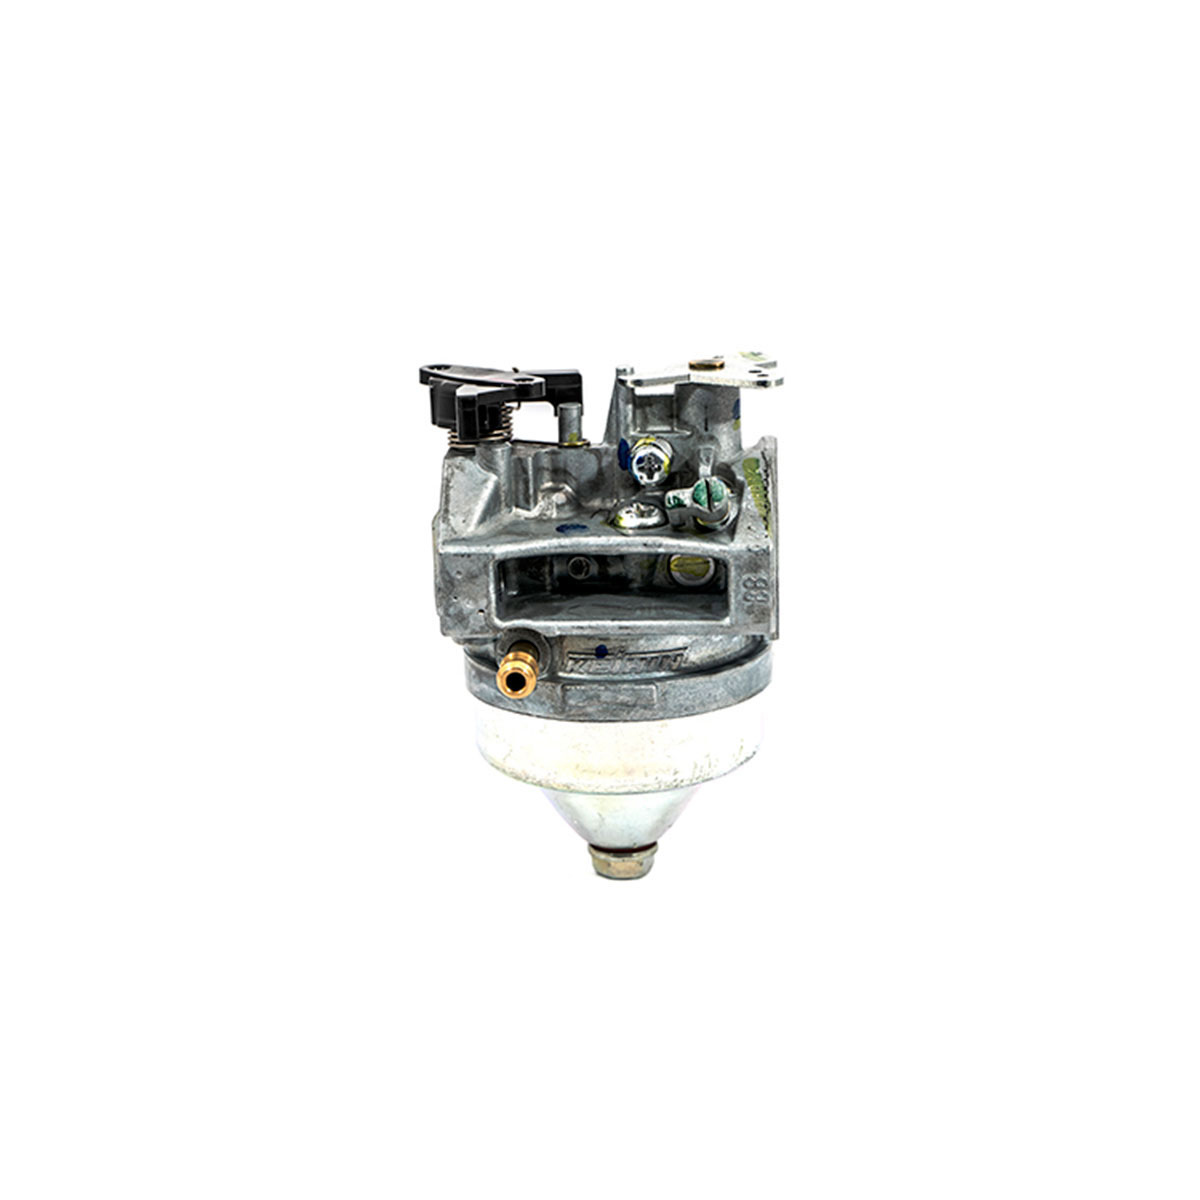 Carburetor Assembly 16100-Z0L-023